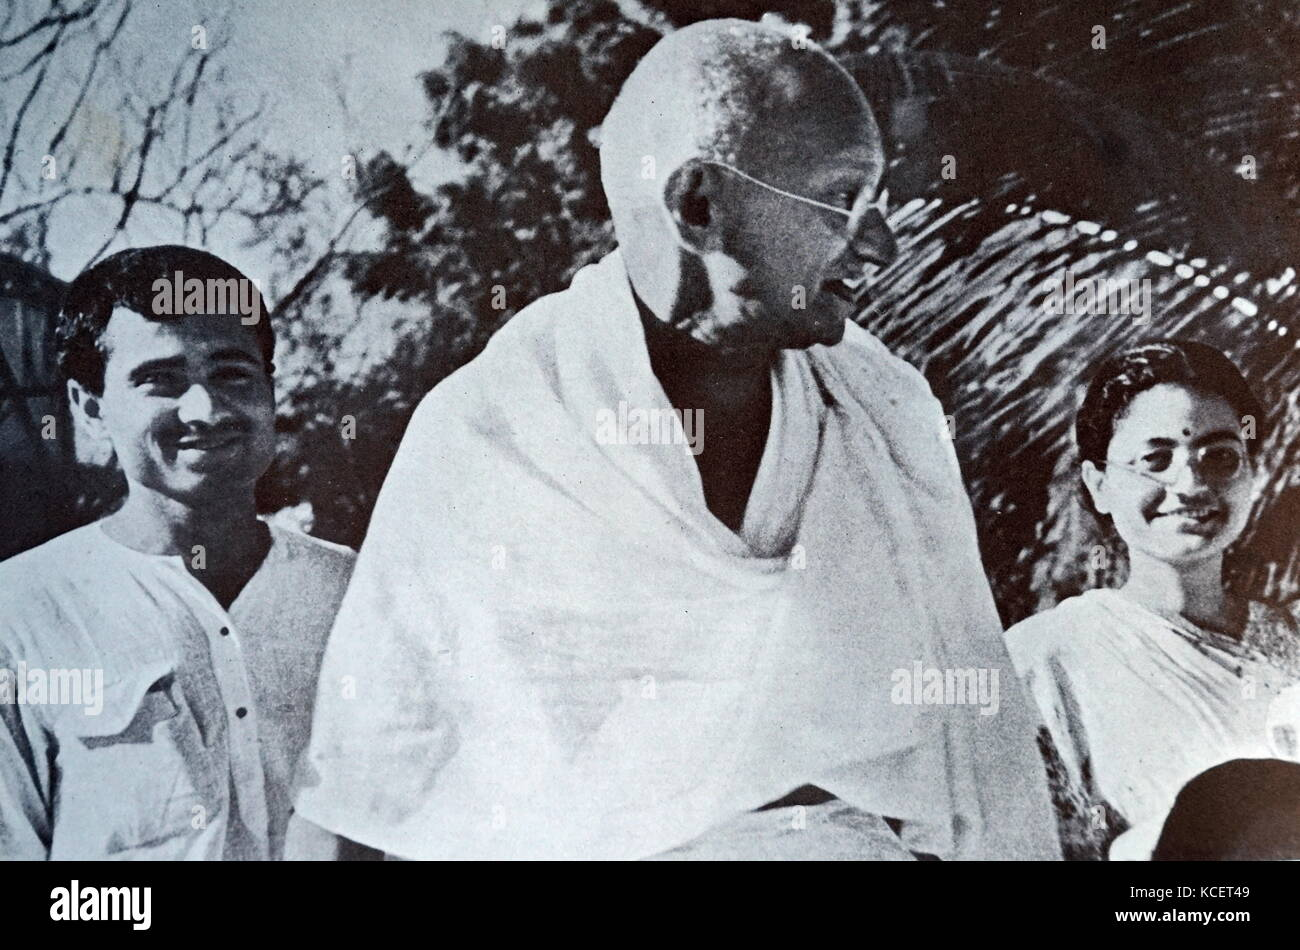 the motivation methods and role of mohandas karamchand gandhi in the indian independence movement Mohandas gandhi — also affectionately known as mahatma — led india's  independence movement in the 1930s and 40s by speaking  rights movement  and tibet's dalai lama have emulated his methods in years since,.